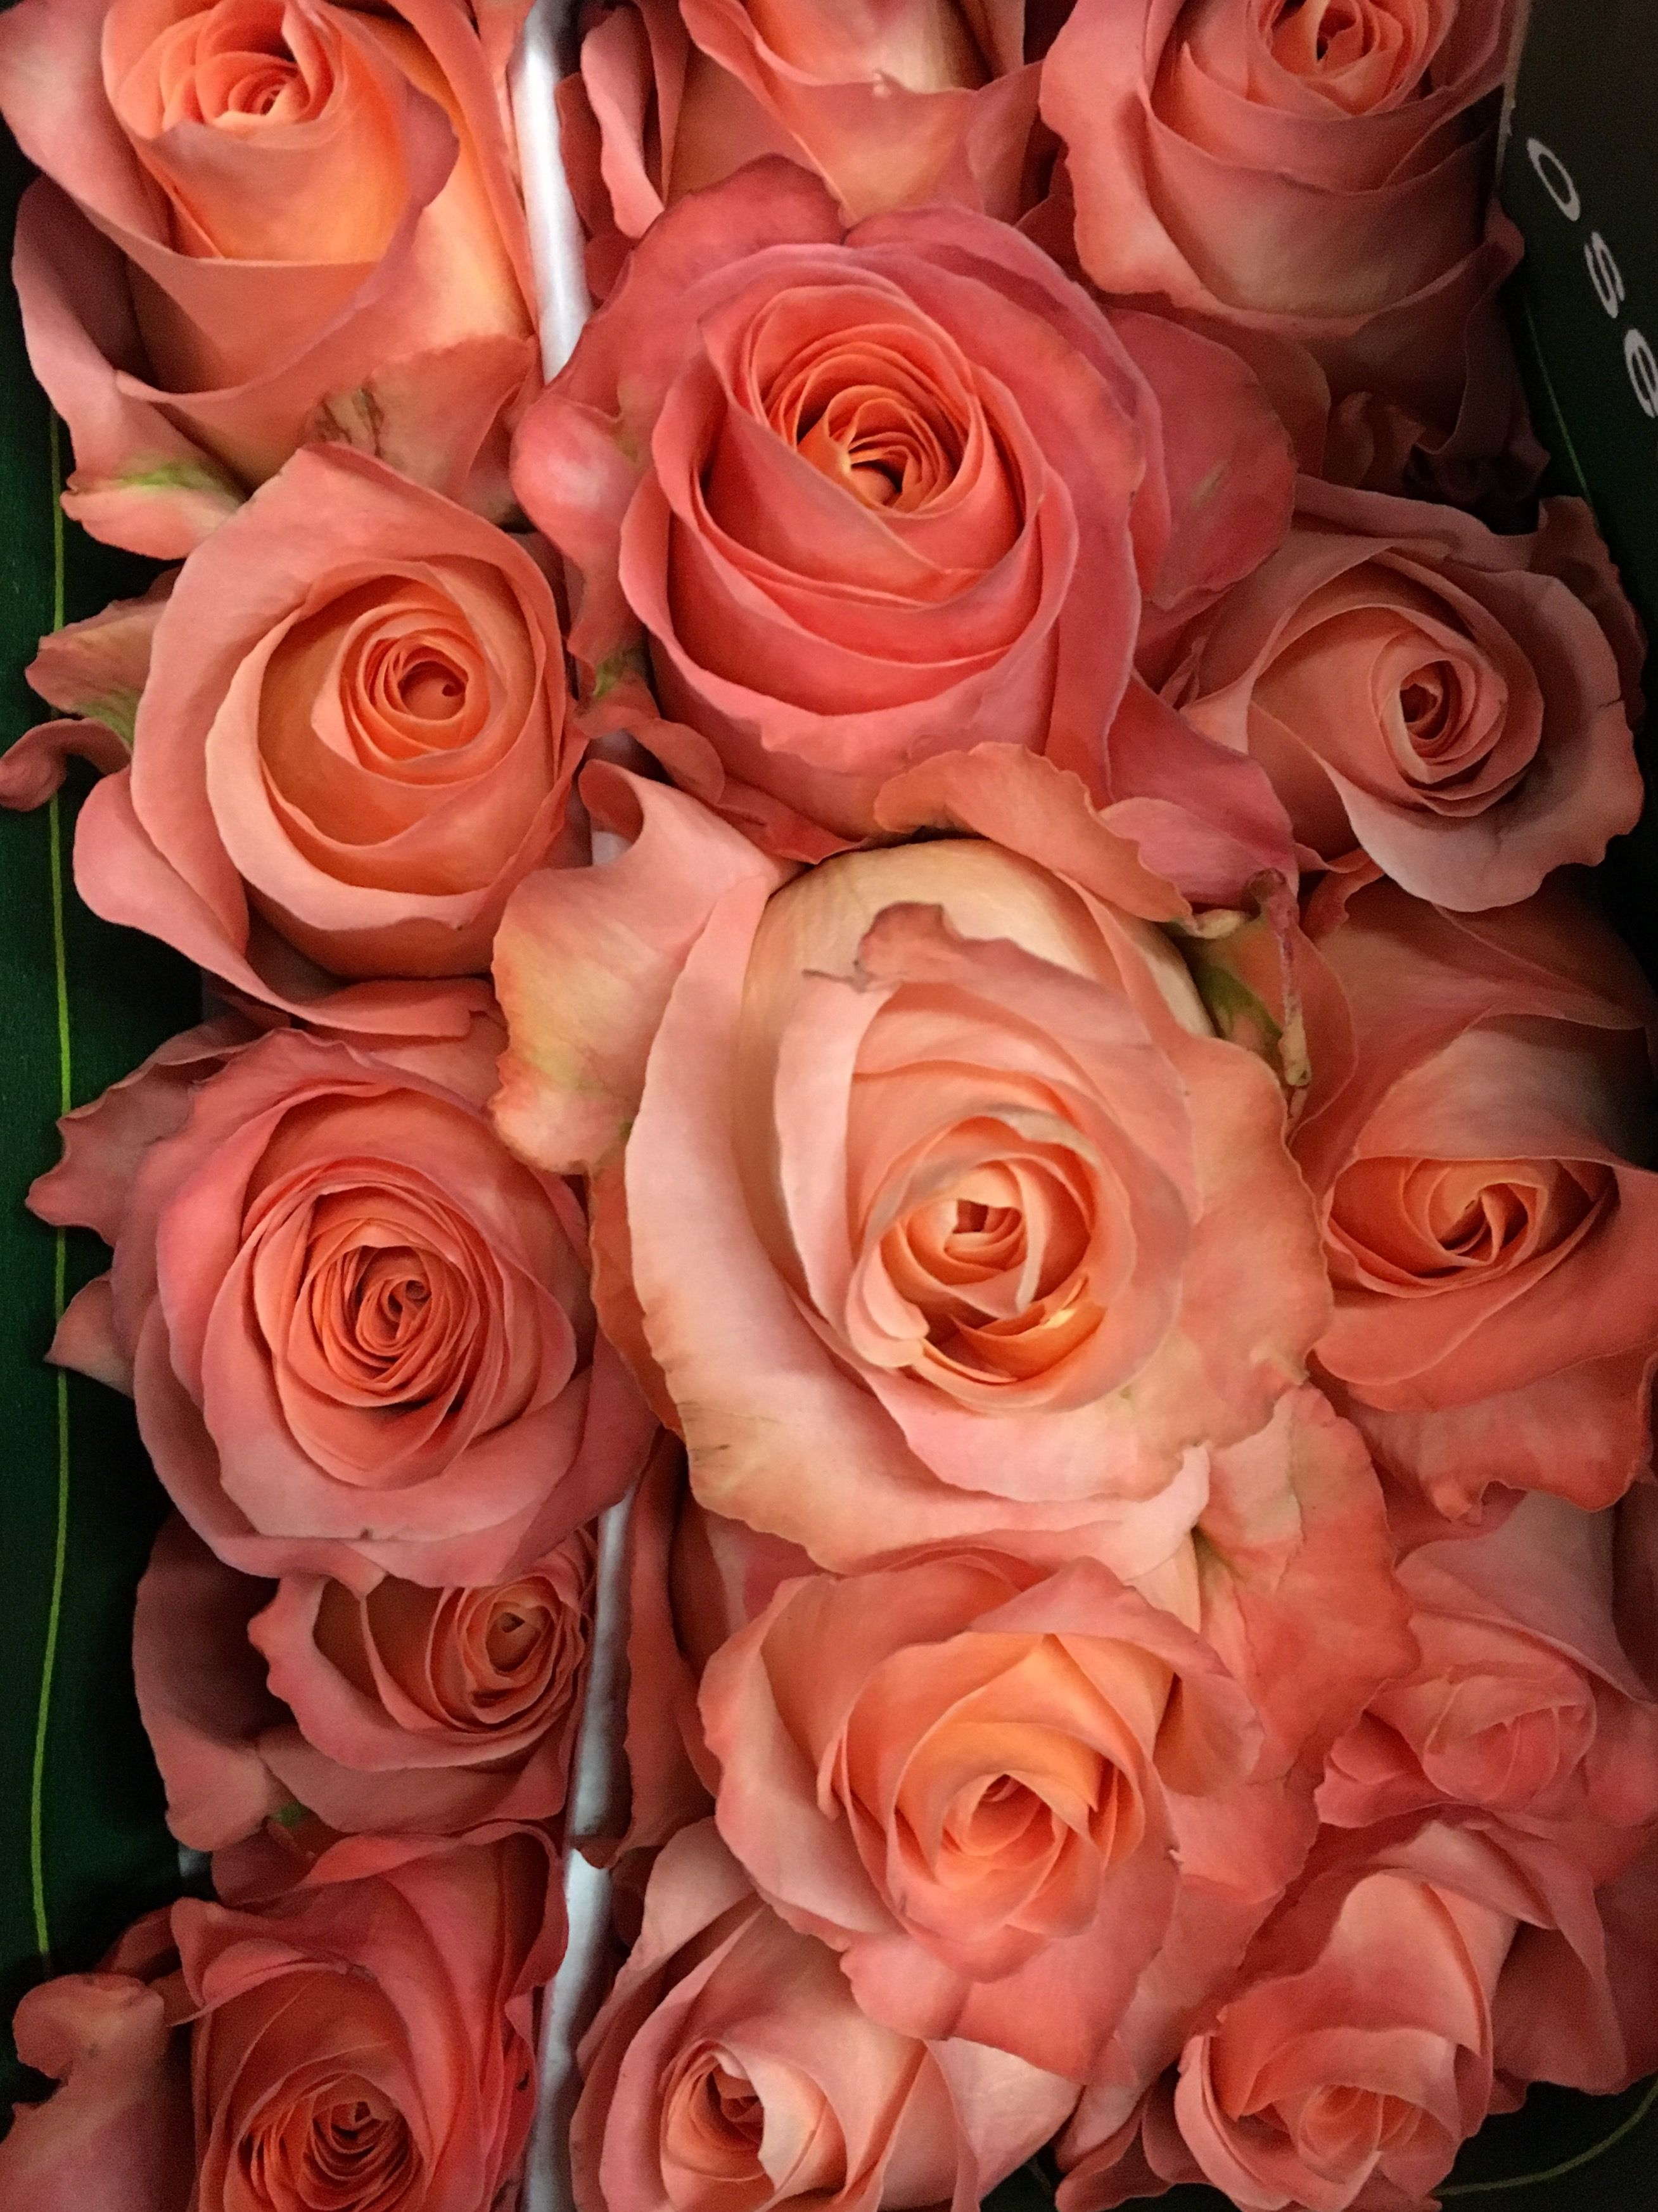 Coral Reef Roses | Flowers | Pinterest | Coral reefs and Flowers